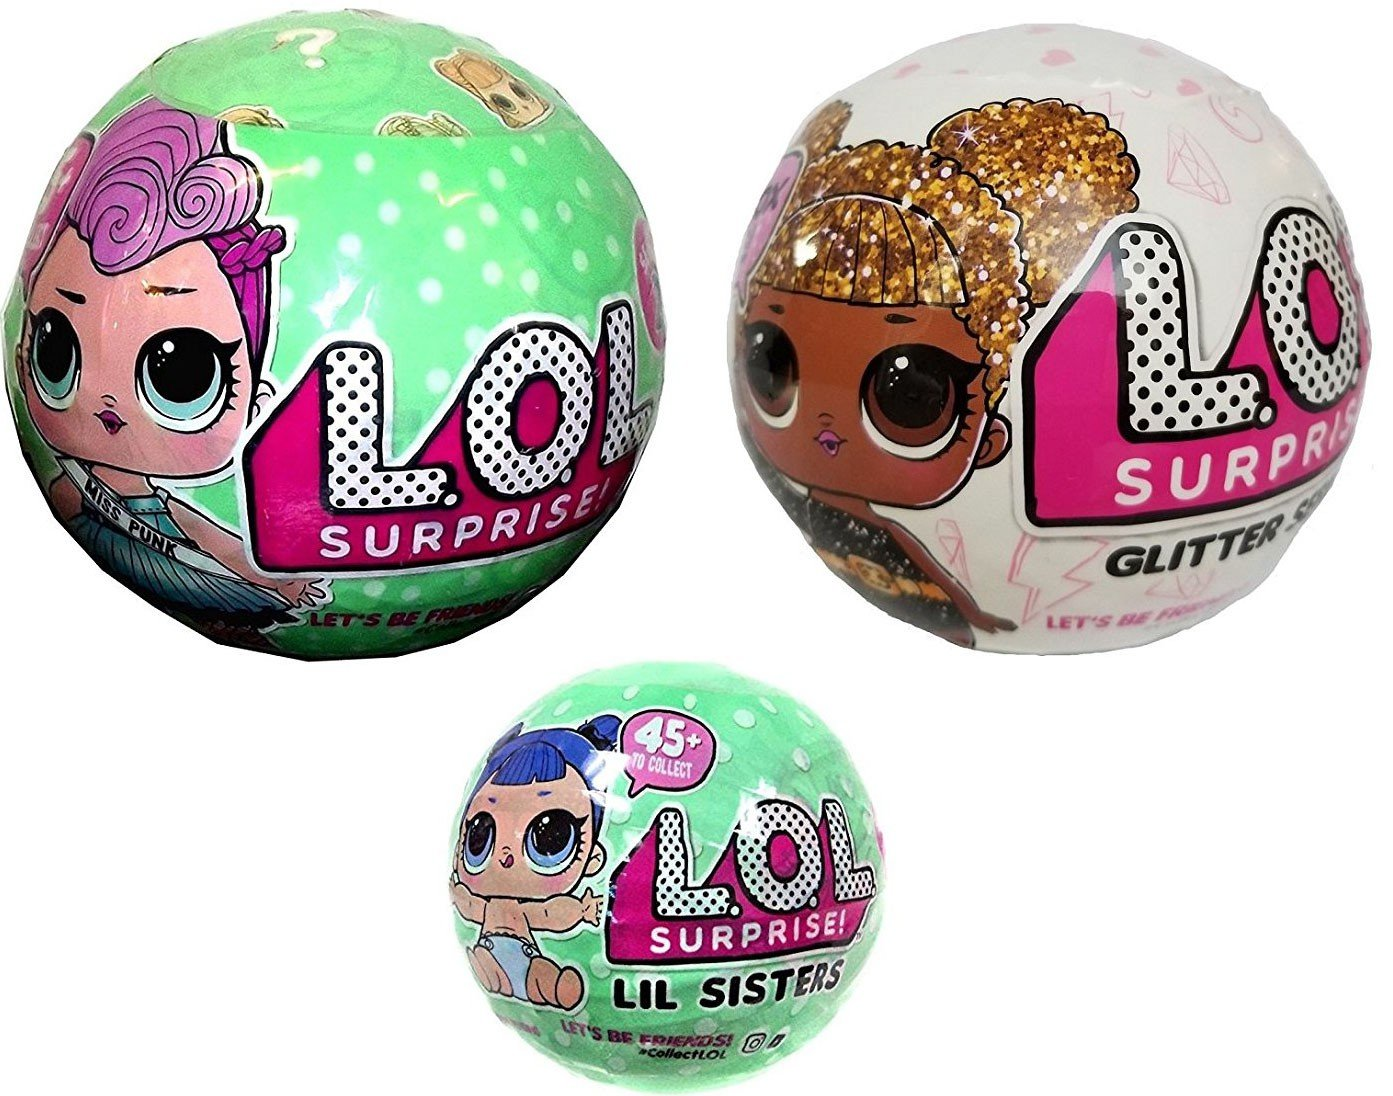 Bundle Lets Be Friends! Miss Punk, Her Lil Sister and Glitter Series - 3 LOL Surprise Dolls